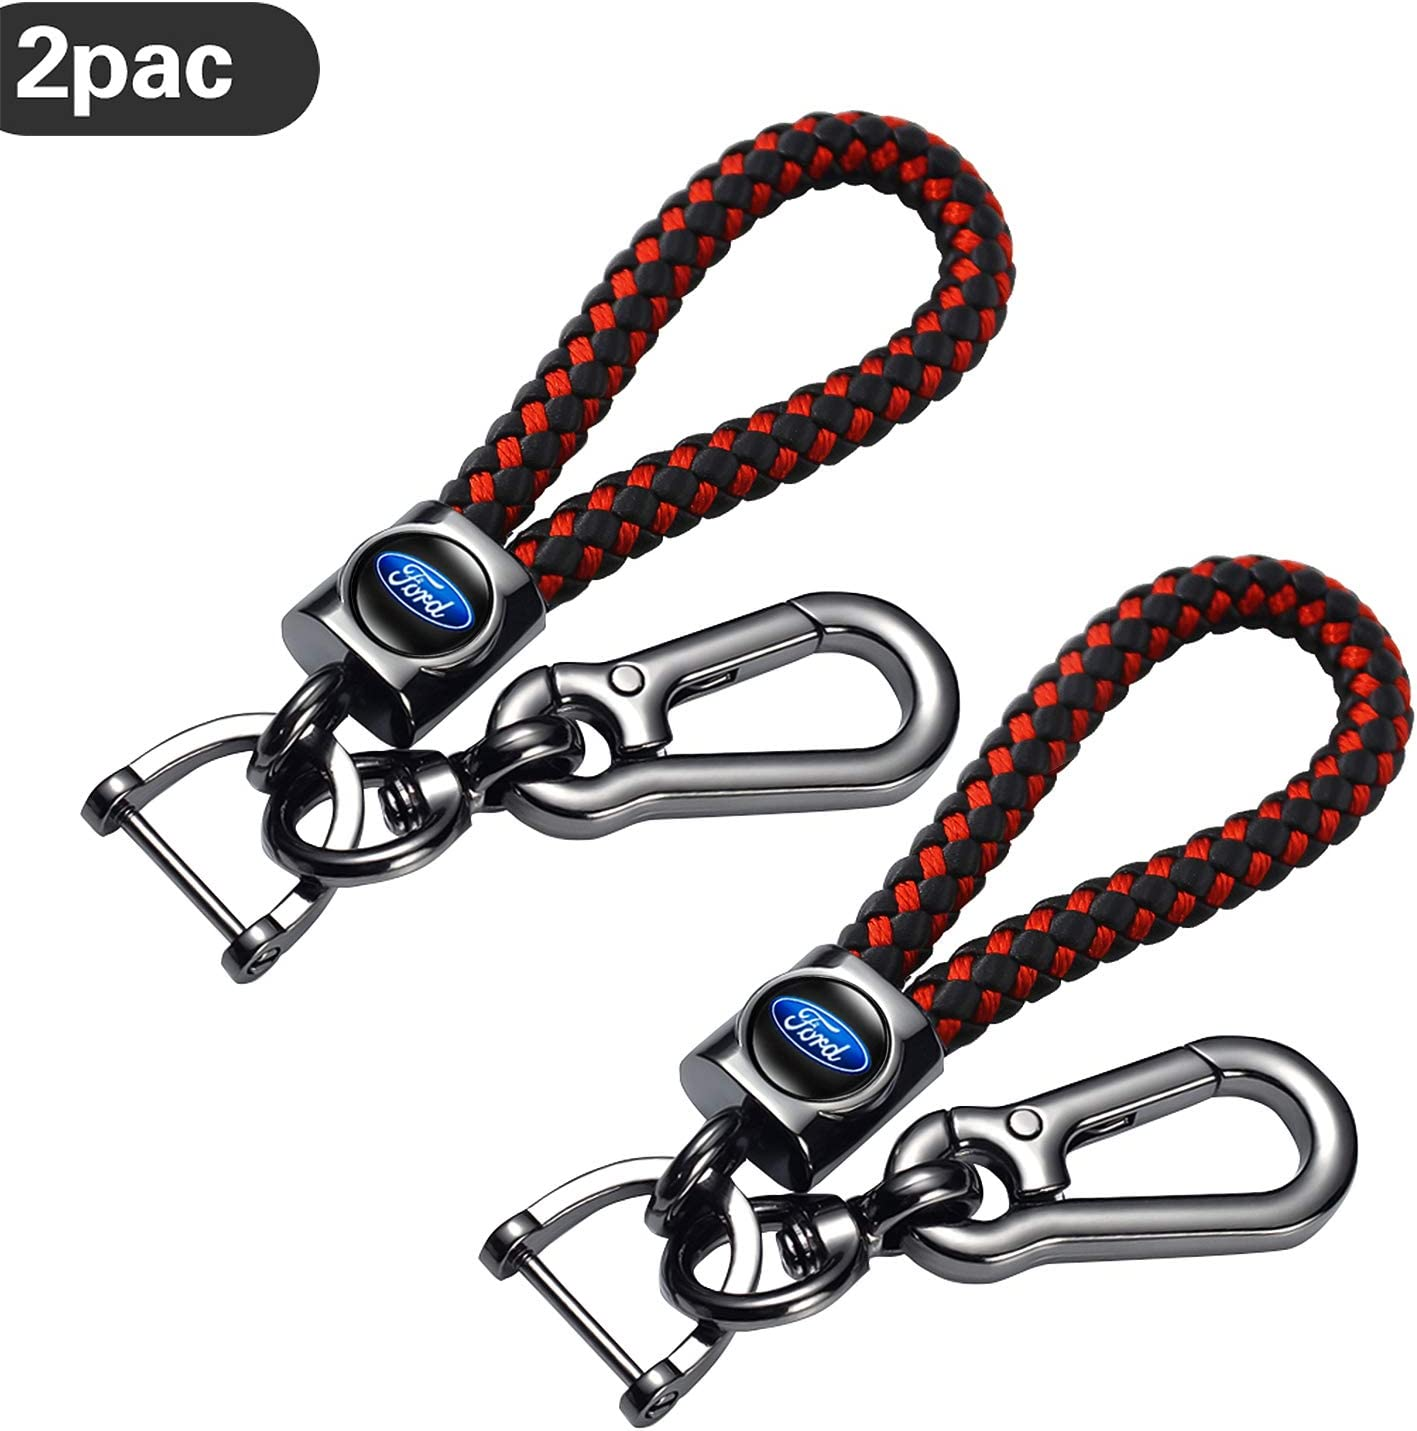 Accessories HYFQD 2pcs Genuine Leather Key Chain Suit for Ford Fusion F150 F250 F350 F450 F550 Edge Explorer Mustang F151 Keychain Key Ring Family